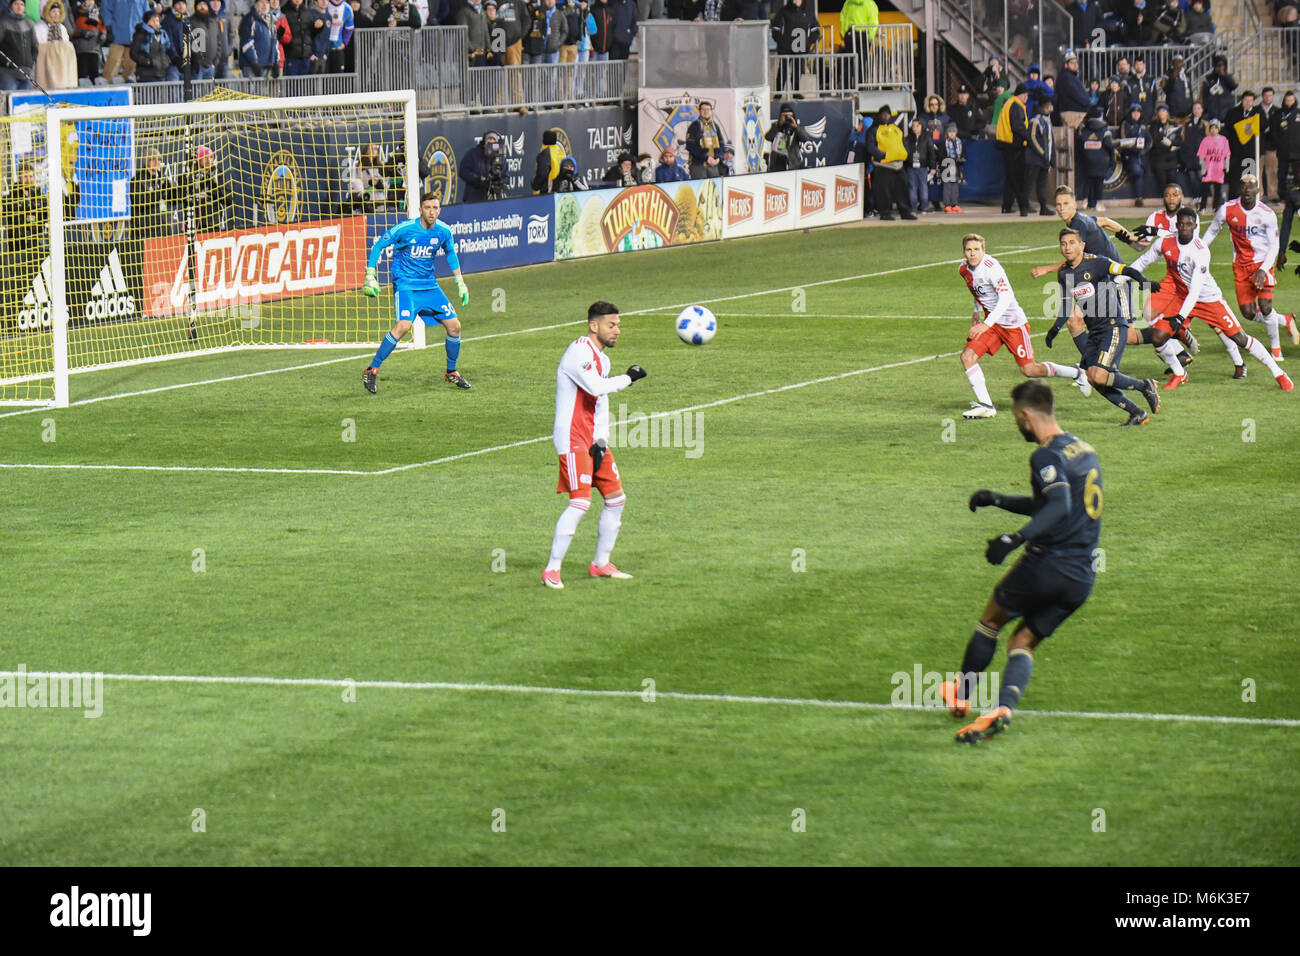 Talen Energy Stadium, Chester, PA, USA. 3rd Mar, 2018. The MLS Philadelphia Union defeat the New England Revolution - Stock Image